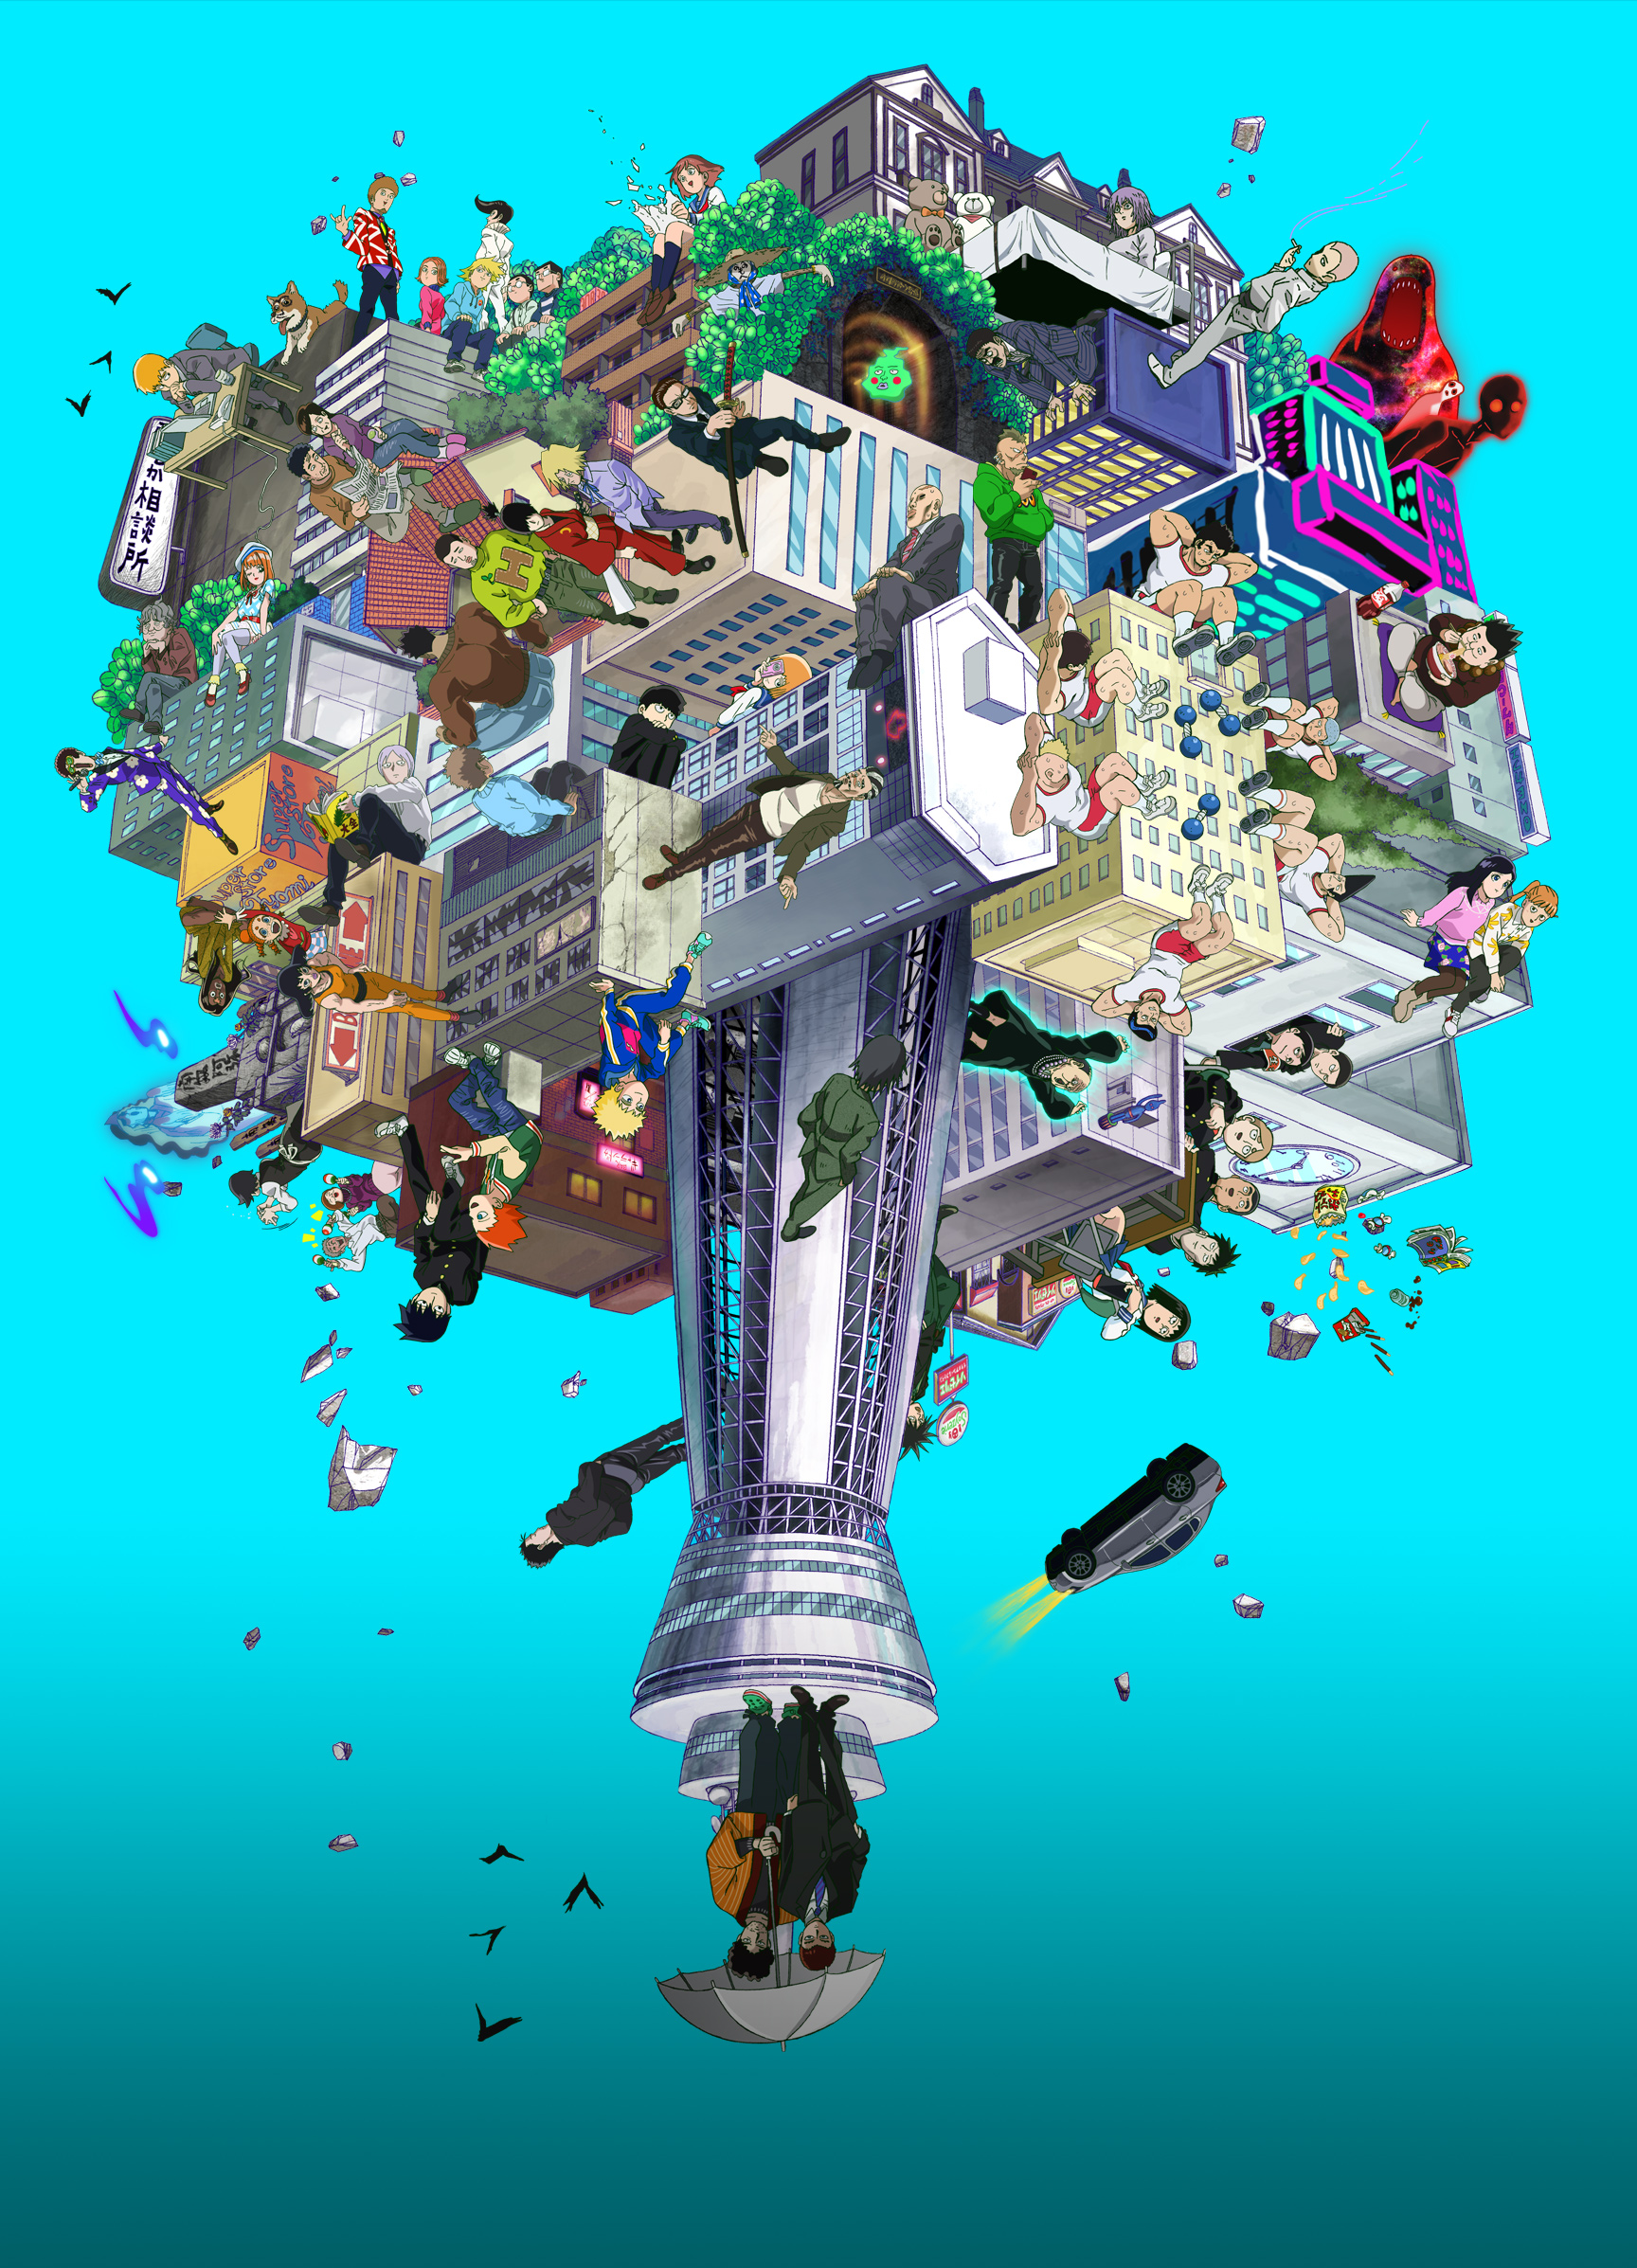 Watch Mob Psycho 100 Episodes Dub   Action/Adventure, Comedy, Drama